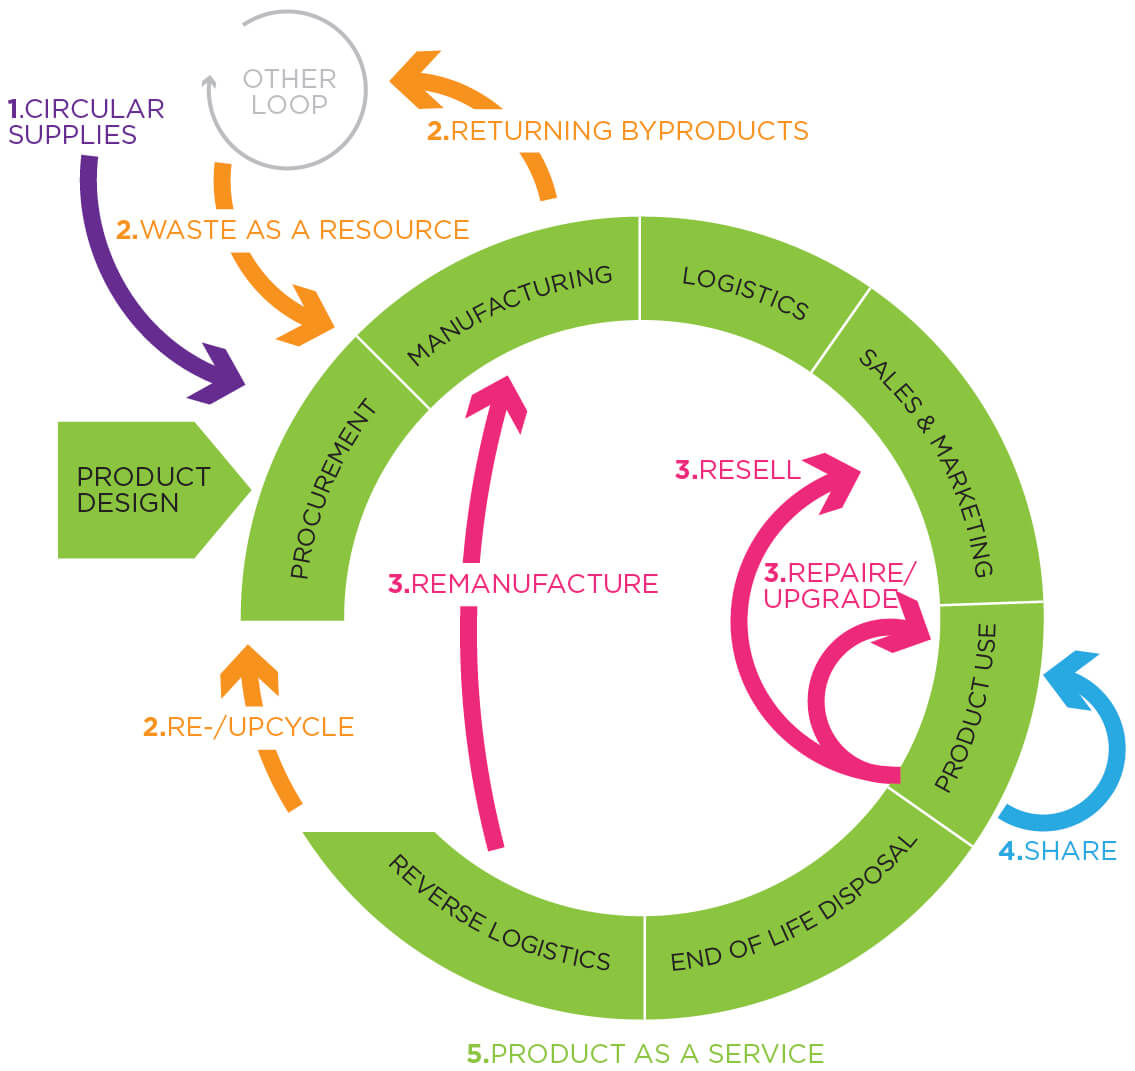 DesignRepublic a belgian brandiing and packaging design agency on how to contribute to the circular economy